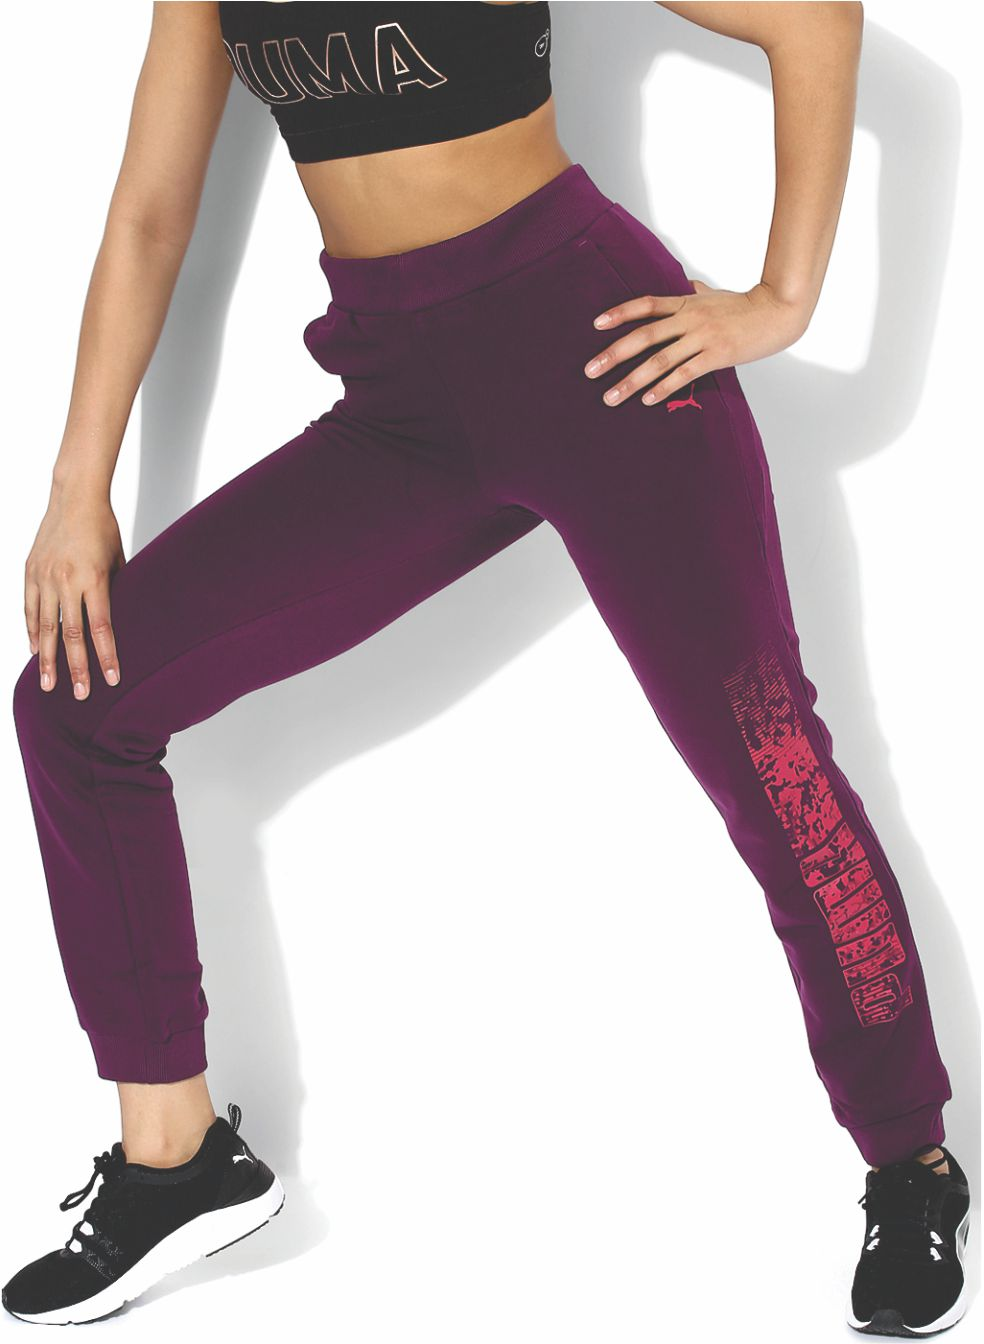 714025e7b8 Tailored in slim fit from cotton for a featherlike feel, these pants will  go well with a sports bra and running shoes. Rs. 2299